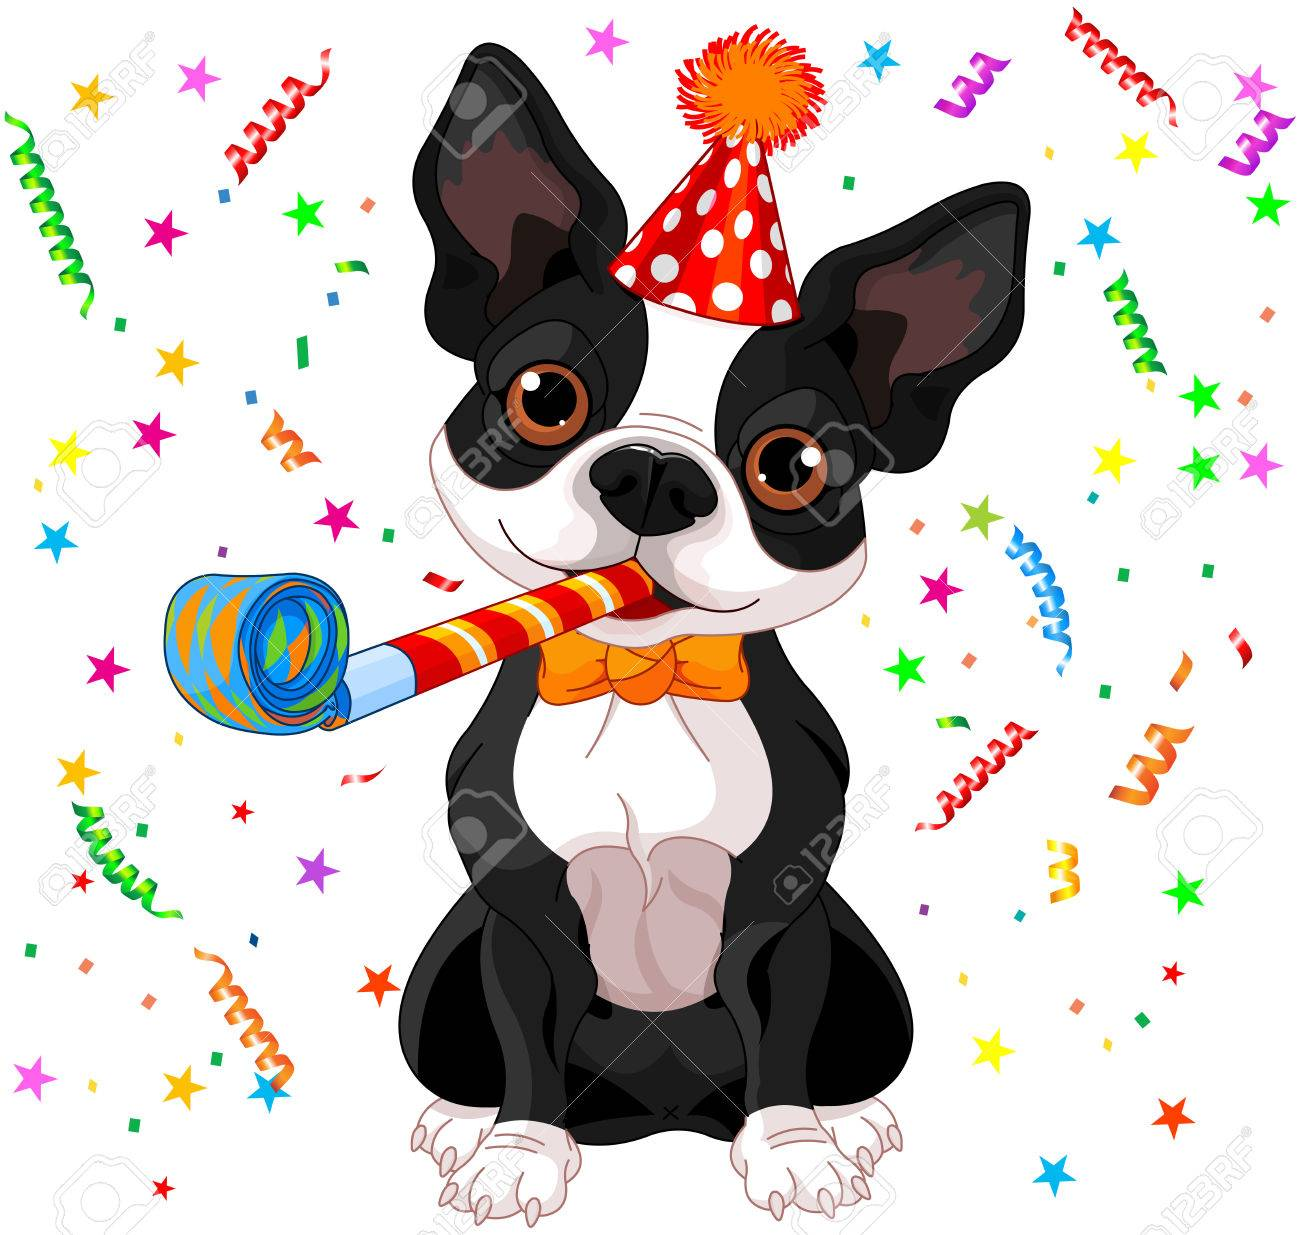 Chien adulte & propreté - Page 5 35588778-illustration-of-cute-boston-terrier-celebrating